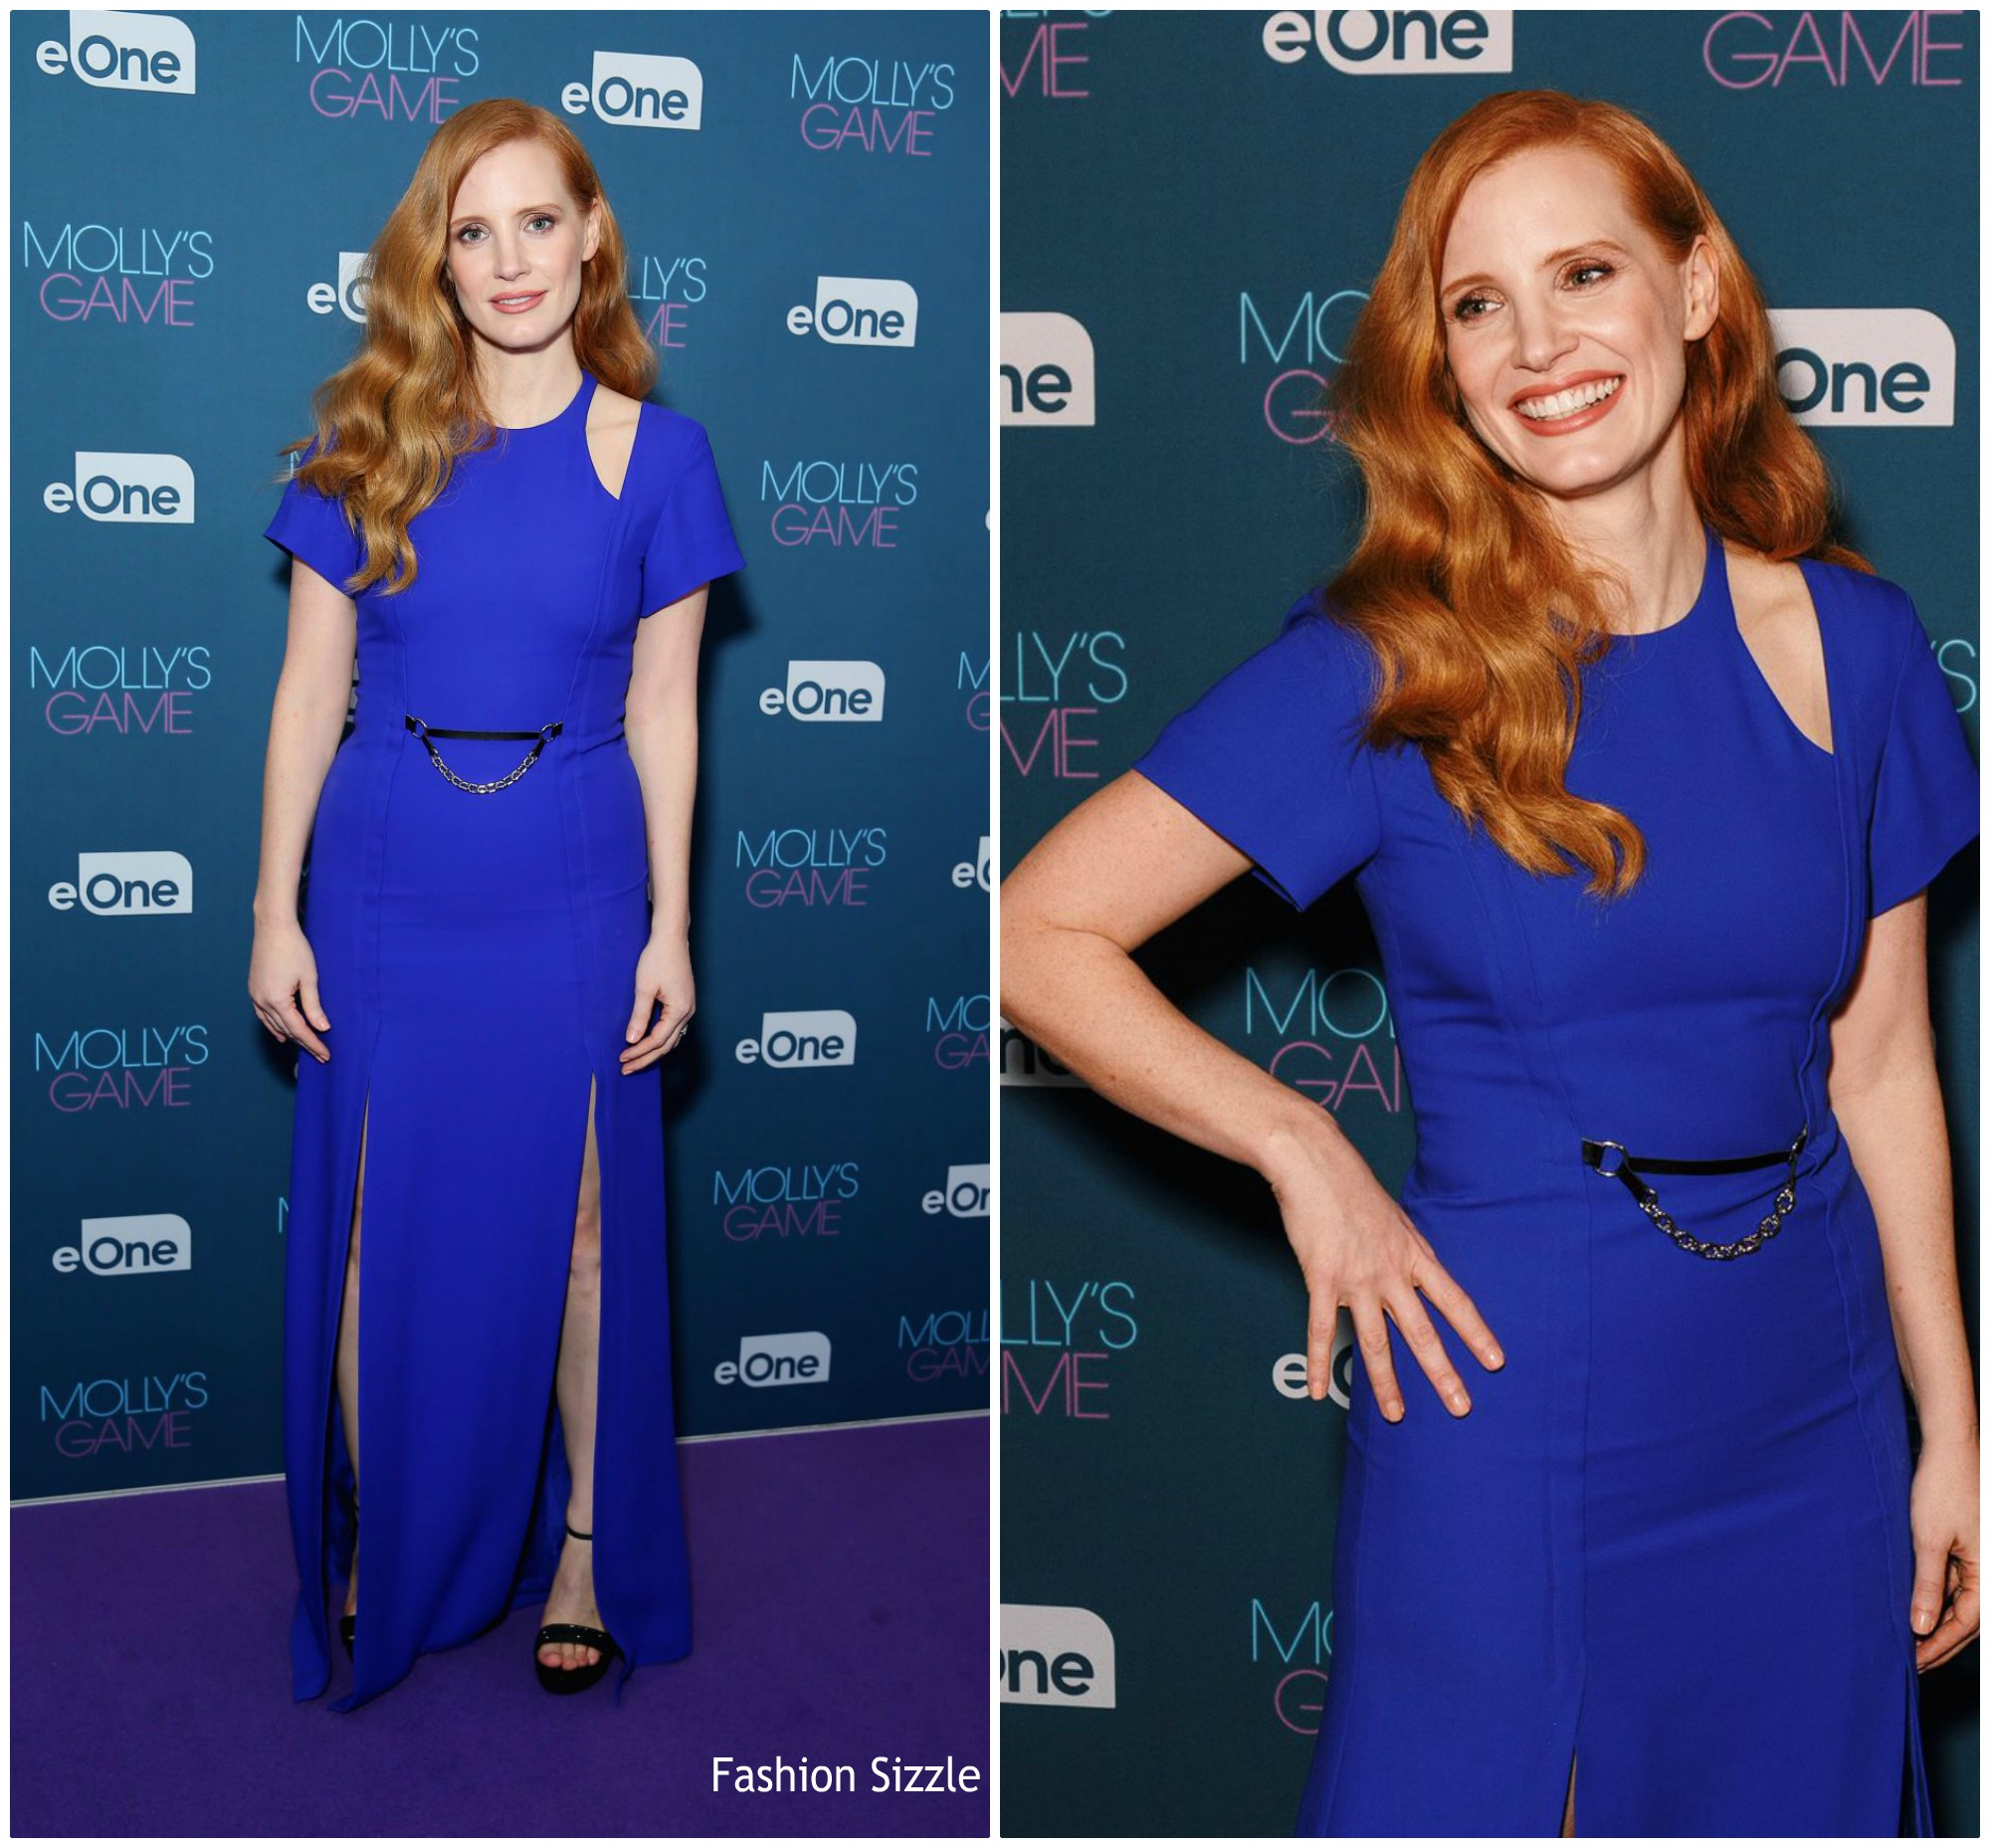 jessica-chastain-in-louis-vuitton-mollys-game-q-a-in-Sydney